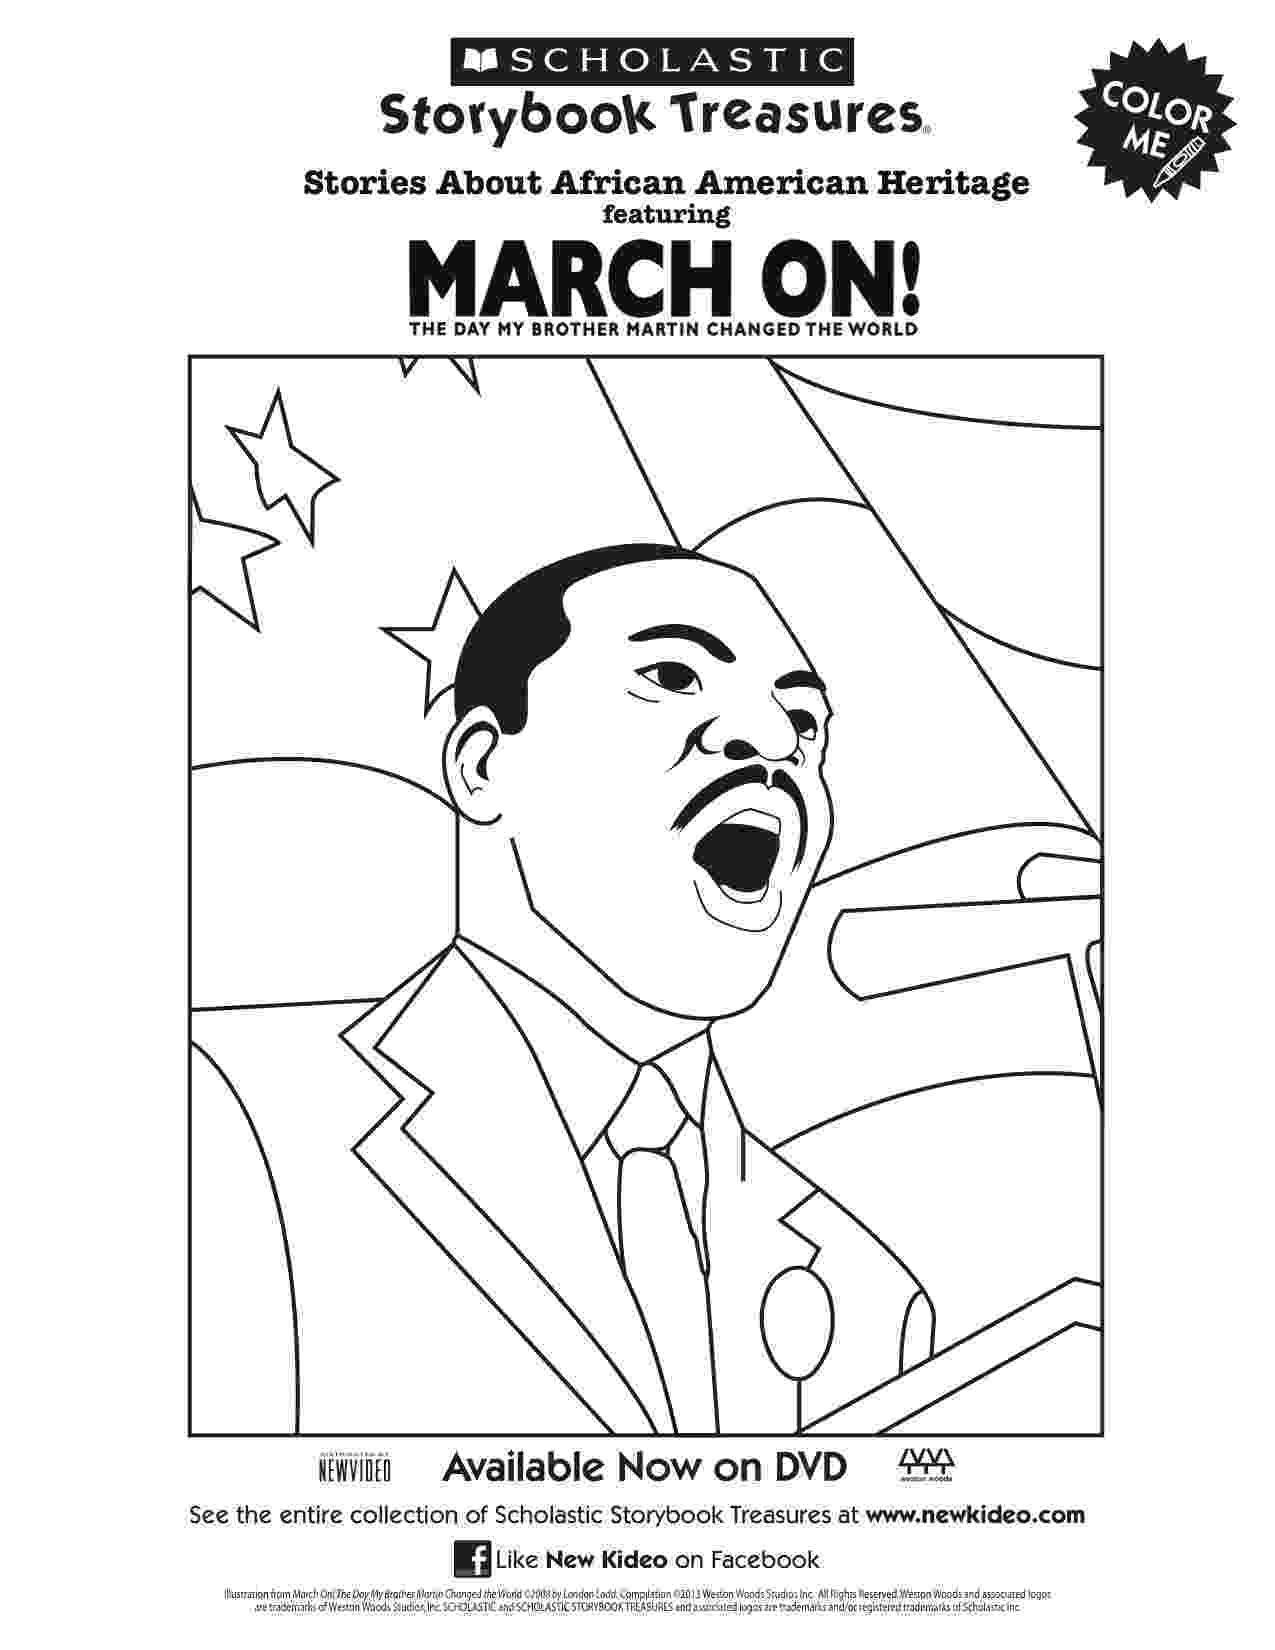 martin luther king jr coloring page martin luther king jr coloring pages and worksheets best coloring king page jr luther martin